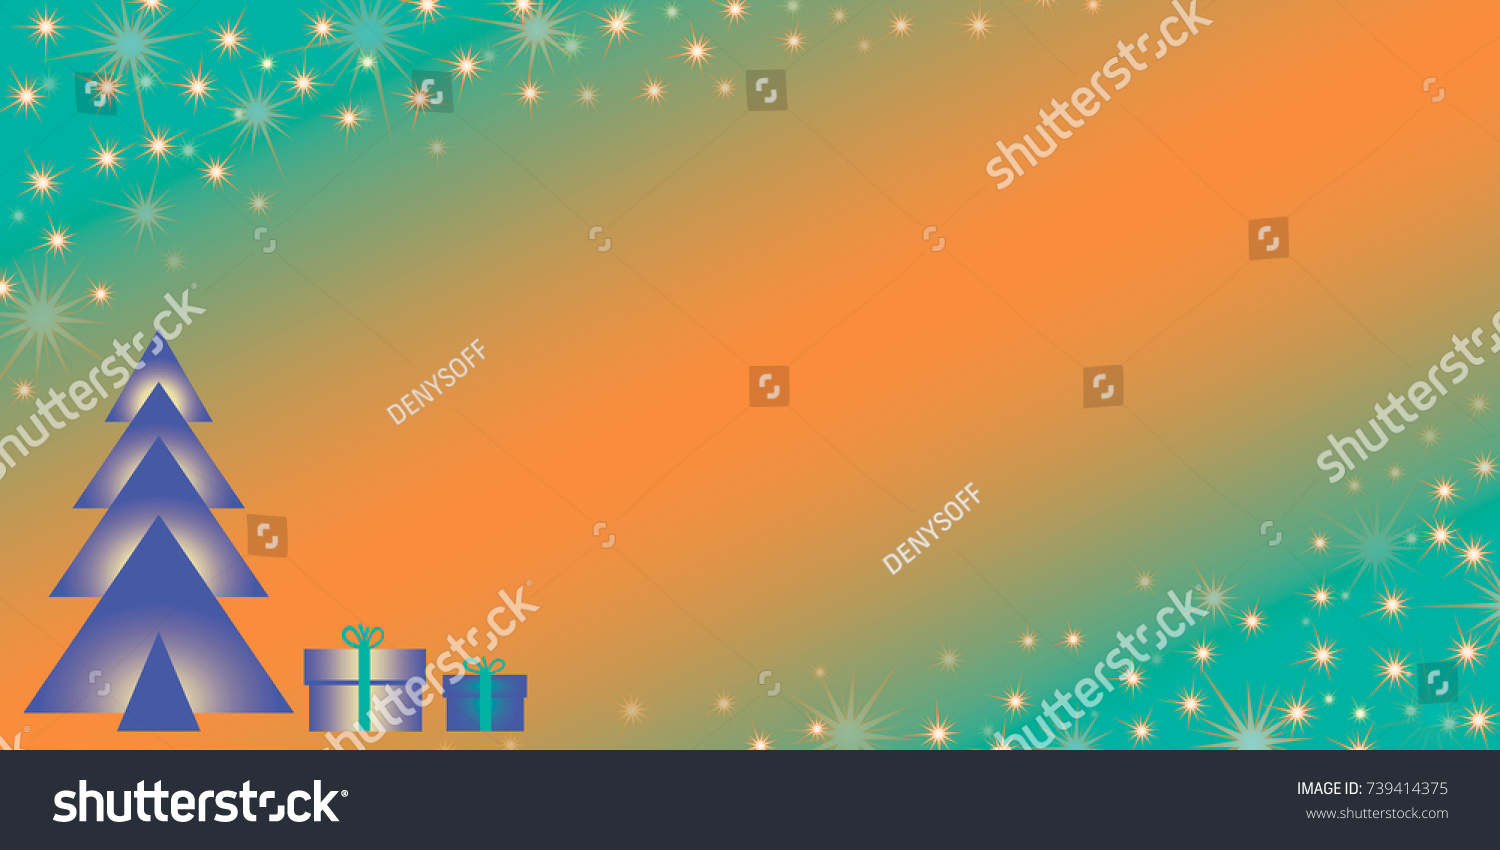 blue christmas tree with gifts on a turquoise orange gradient